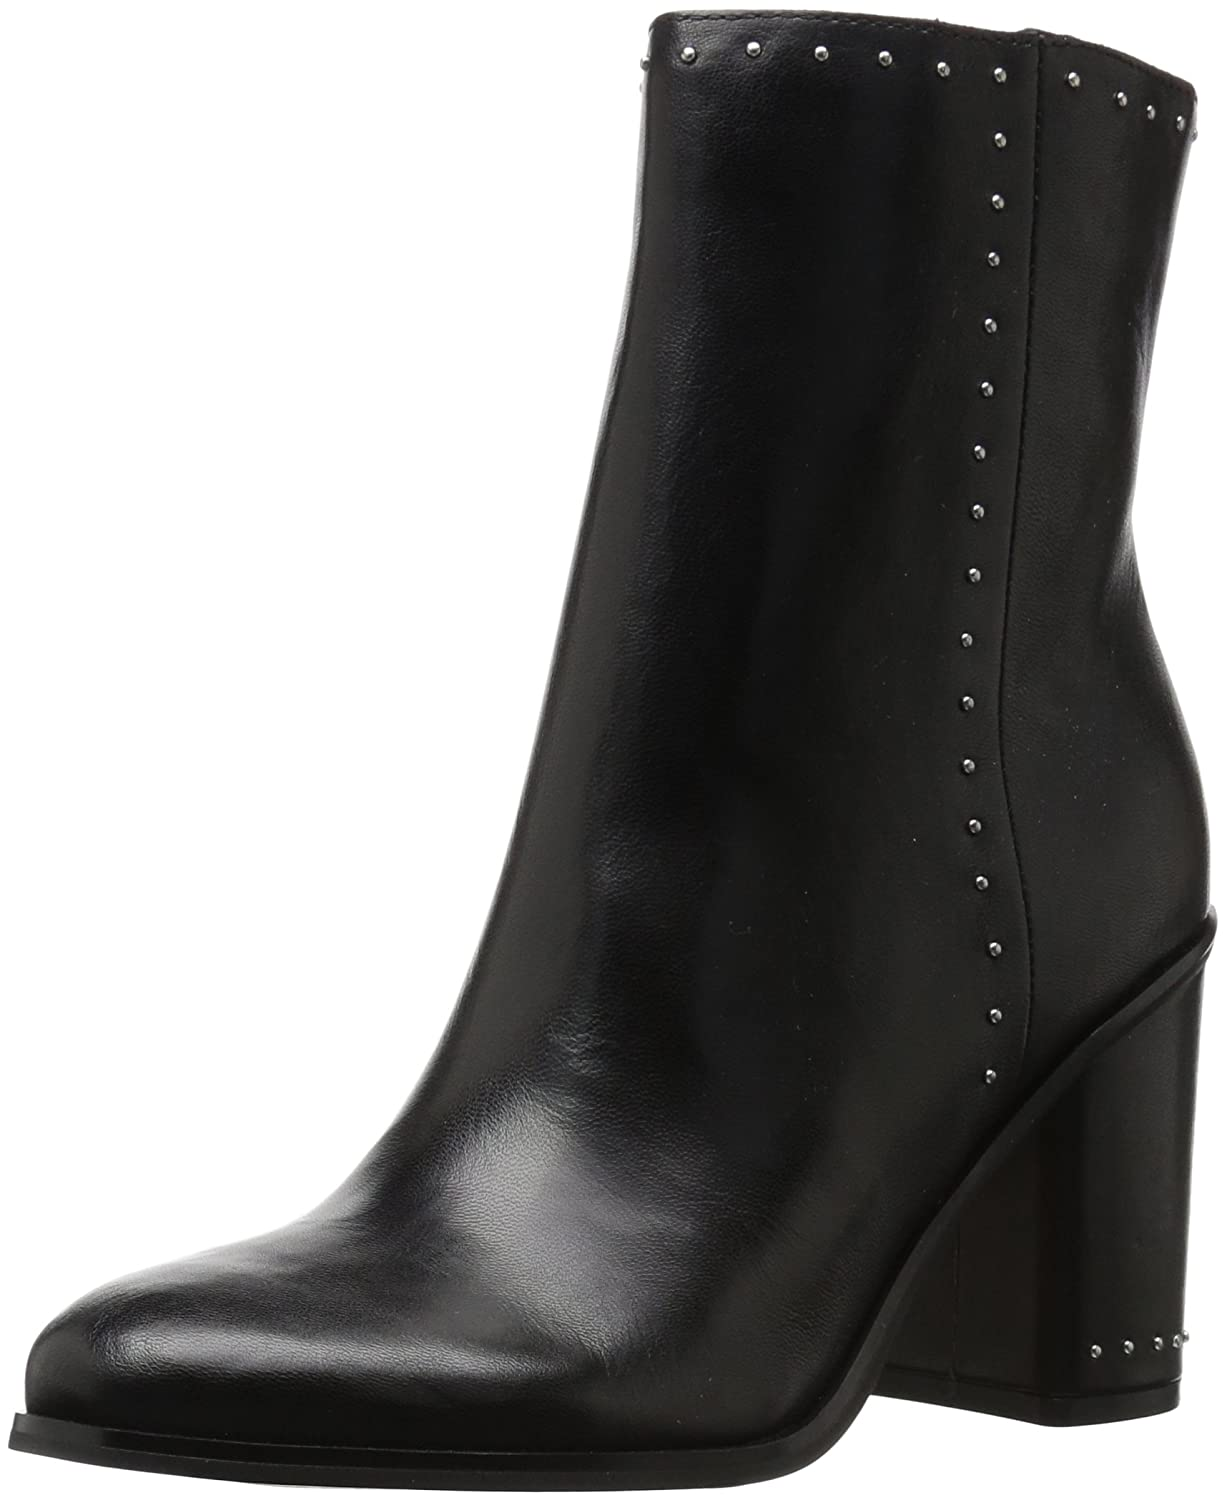 Marc Fisher Women's Piazza Ankle Boot B071Z6W75M 6 B(M) US|Black